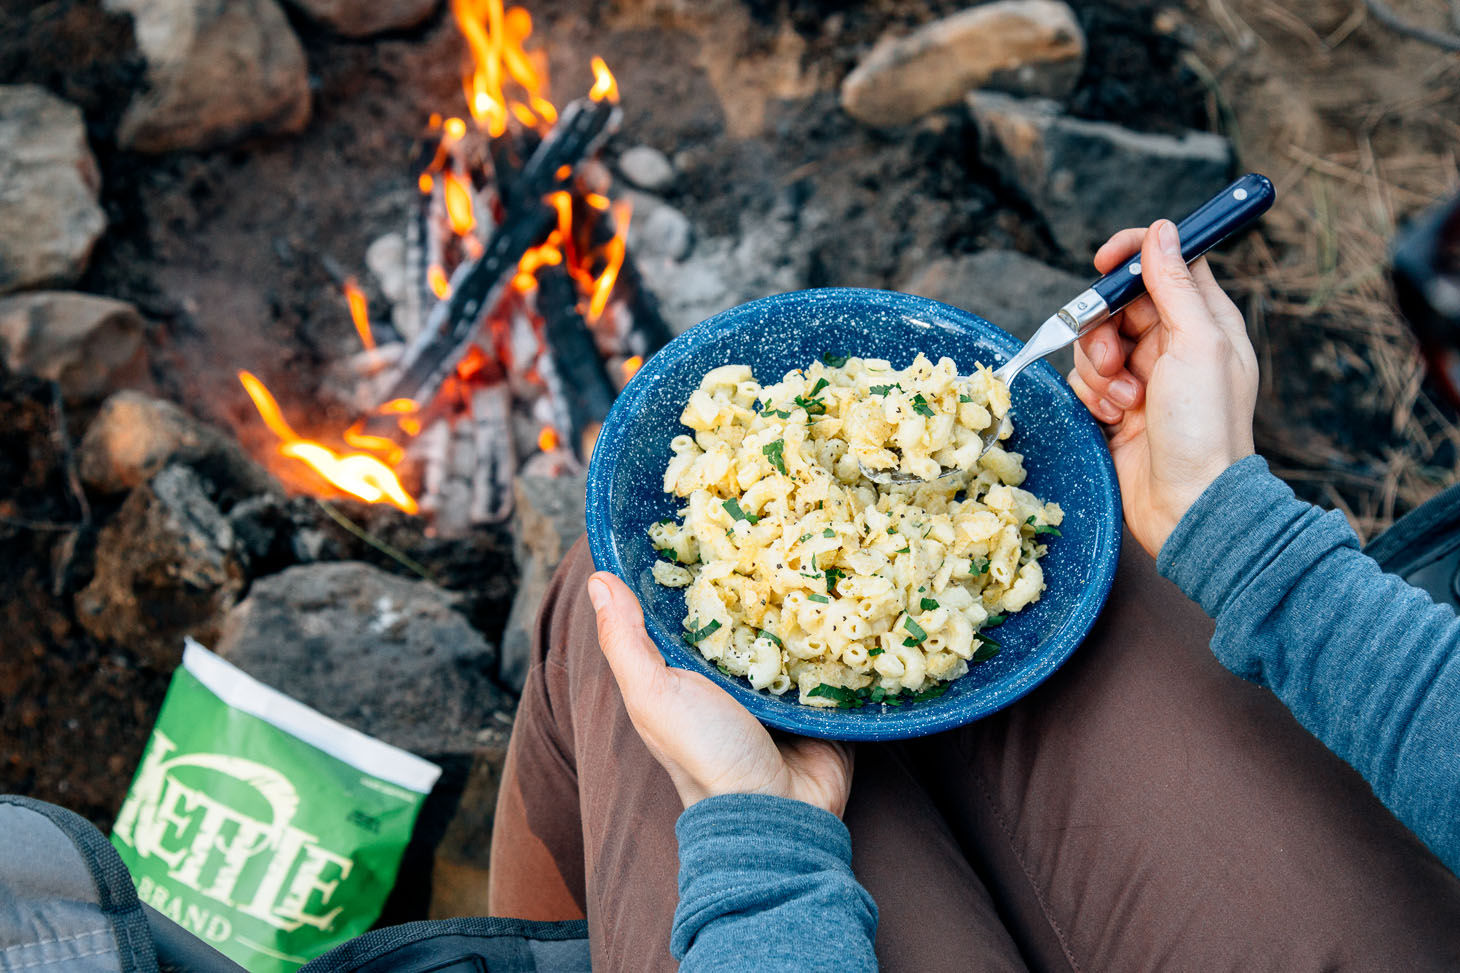 Mac and cheese in a blue camping bowl next to a fire.